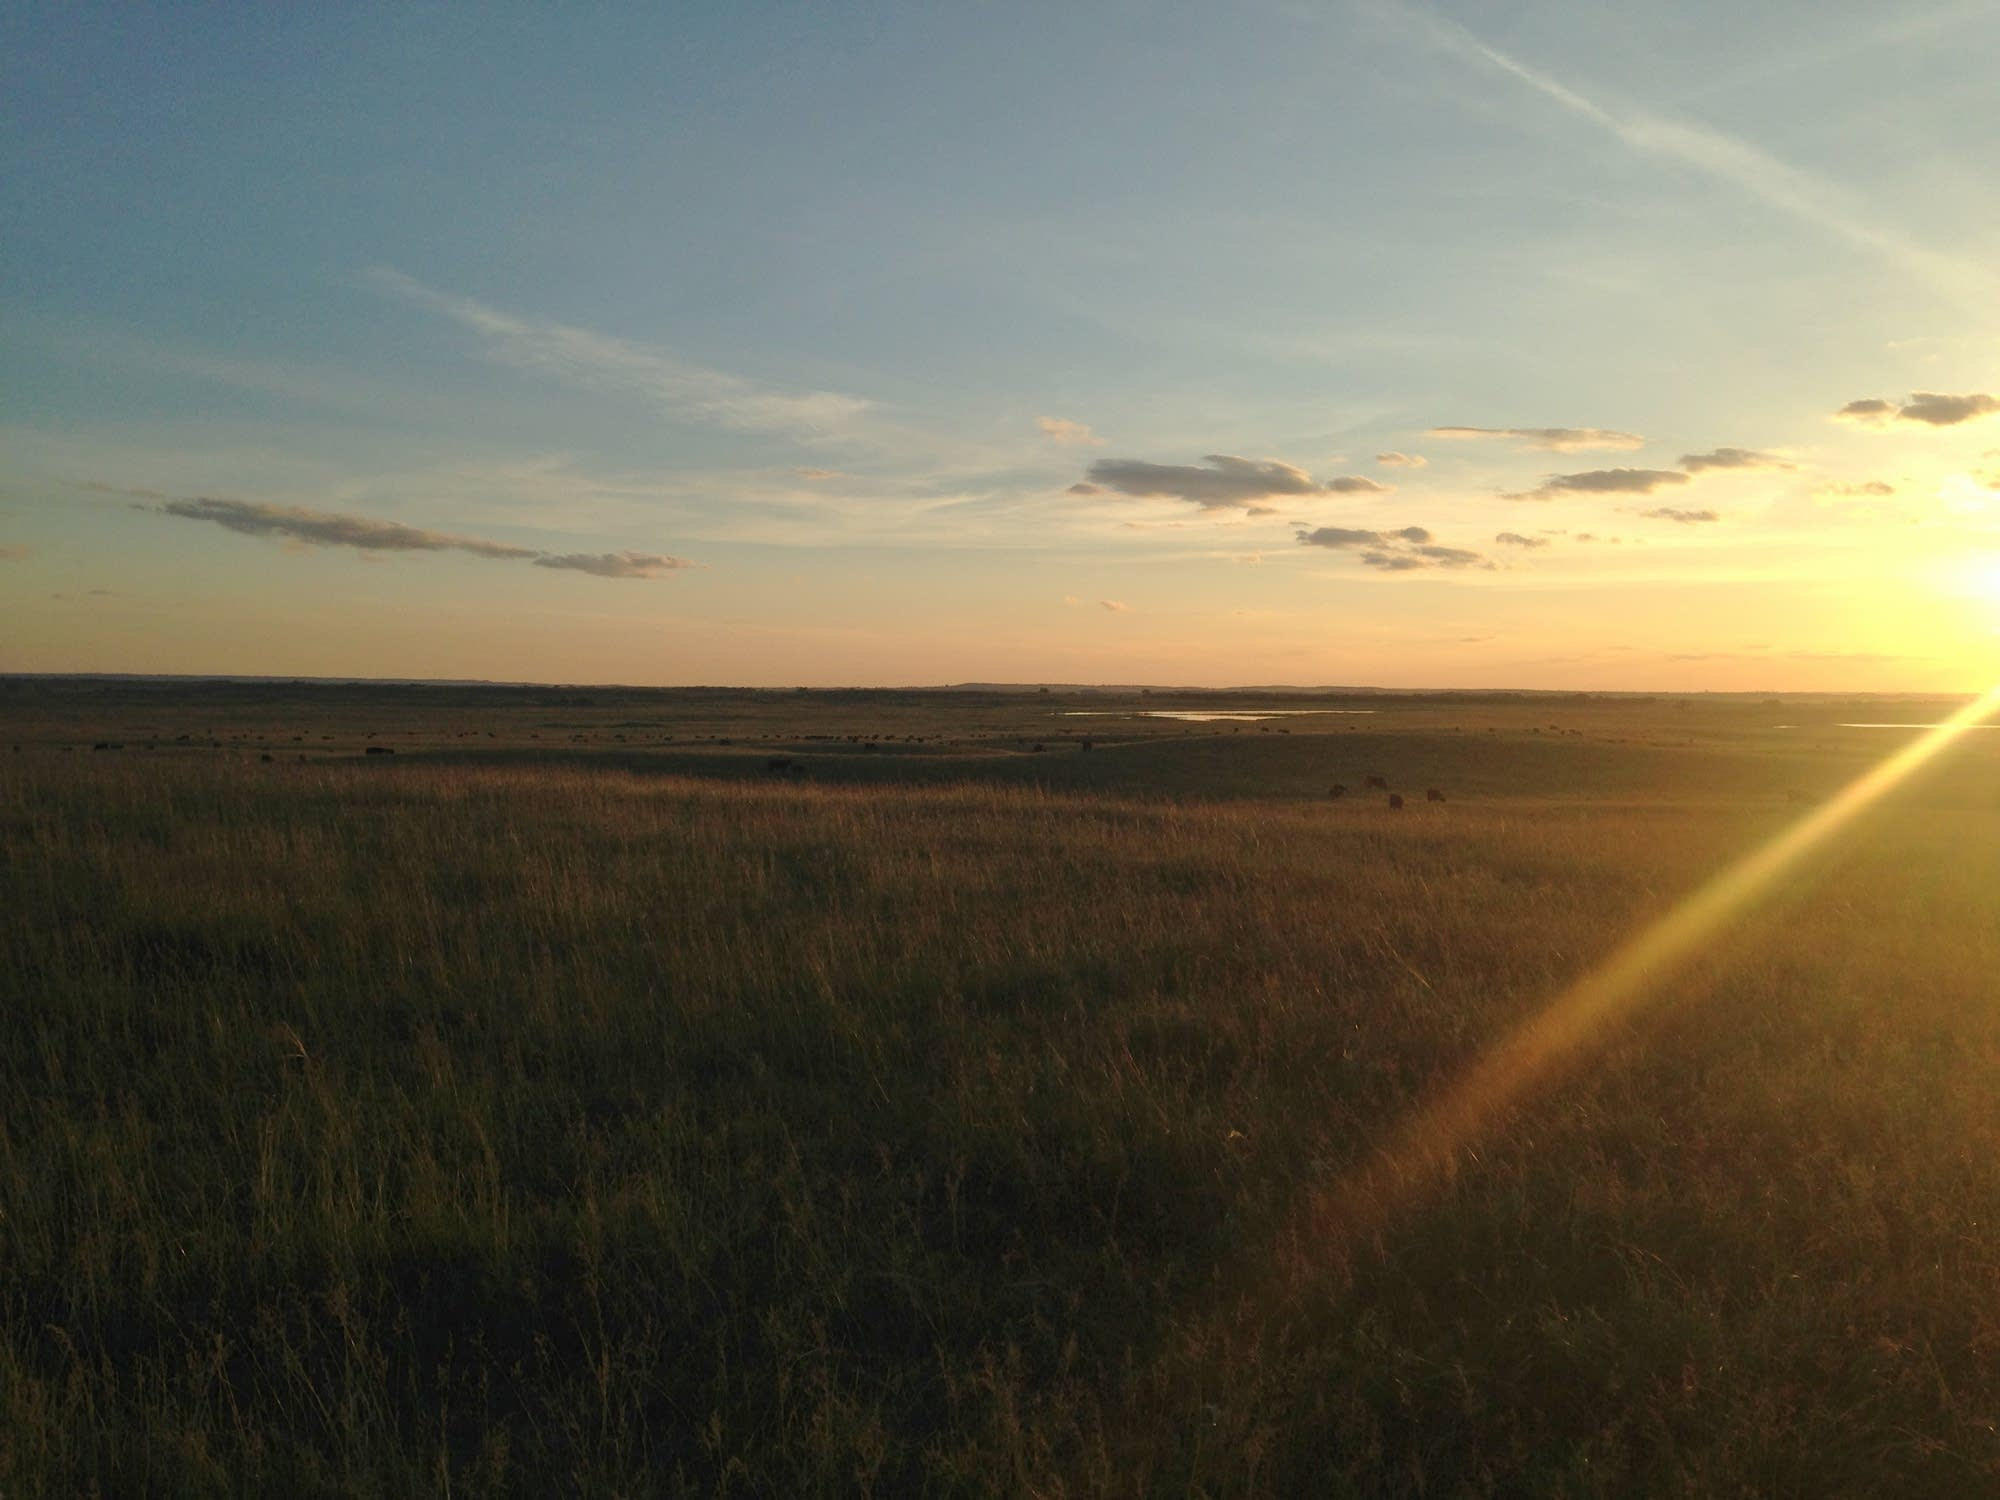 Sunset over a field in Sterling, North Dakota.